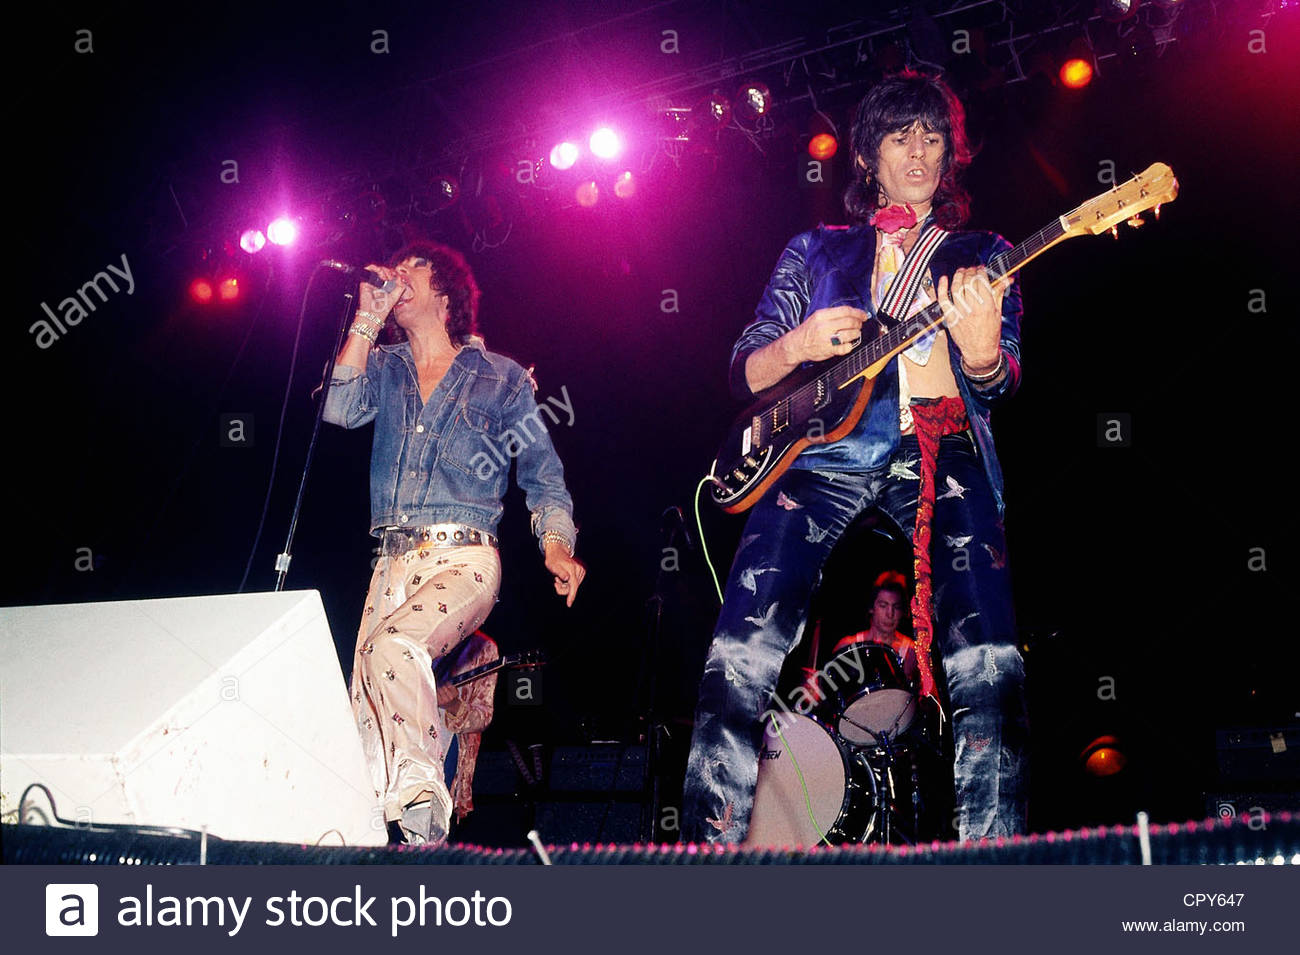 Rolling Stones, British rock band, Mick Jagger and Keith Richards on stage, 1970s, jeans jacket, musicians, musician, - Stock Image